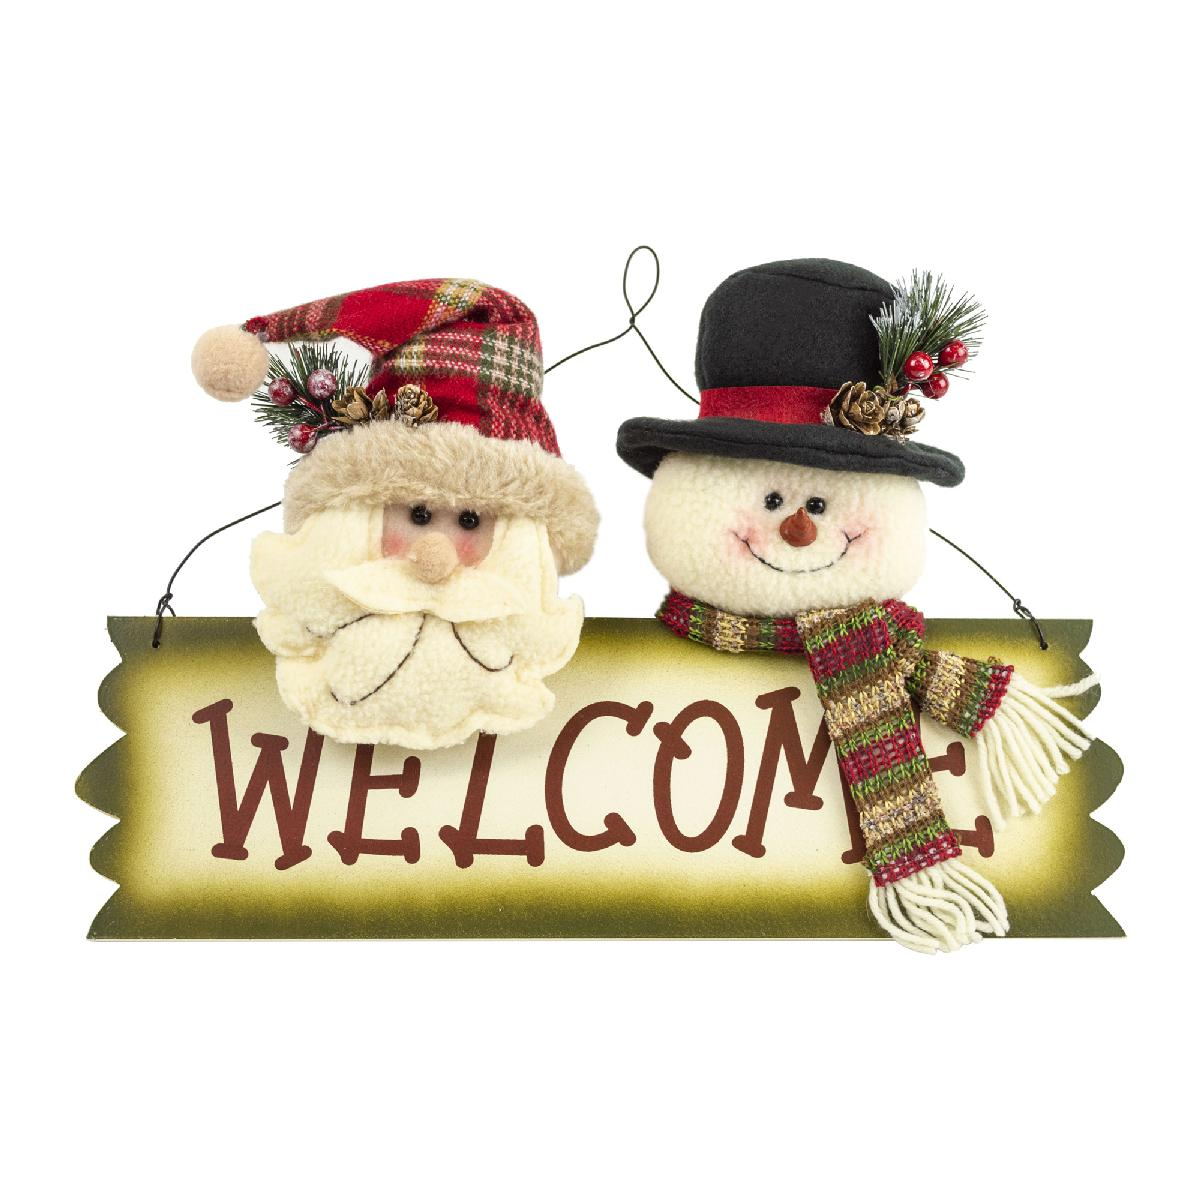 15IN BURLAP SANTA SANTA SNOWMAN WELCOME PLAQUE